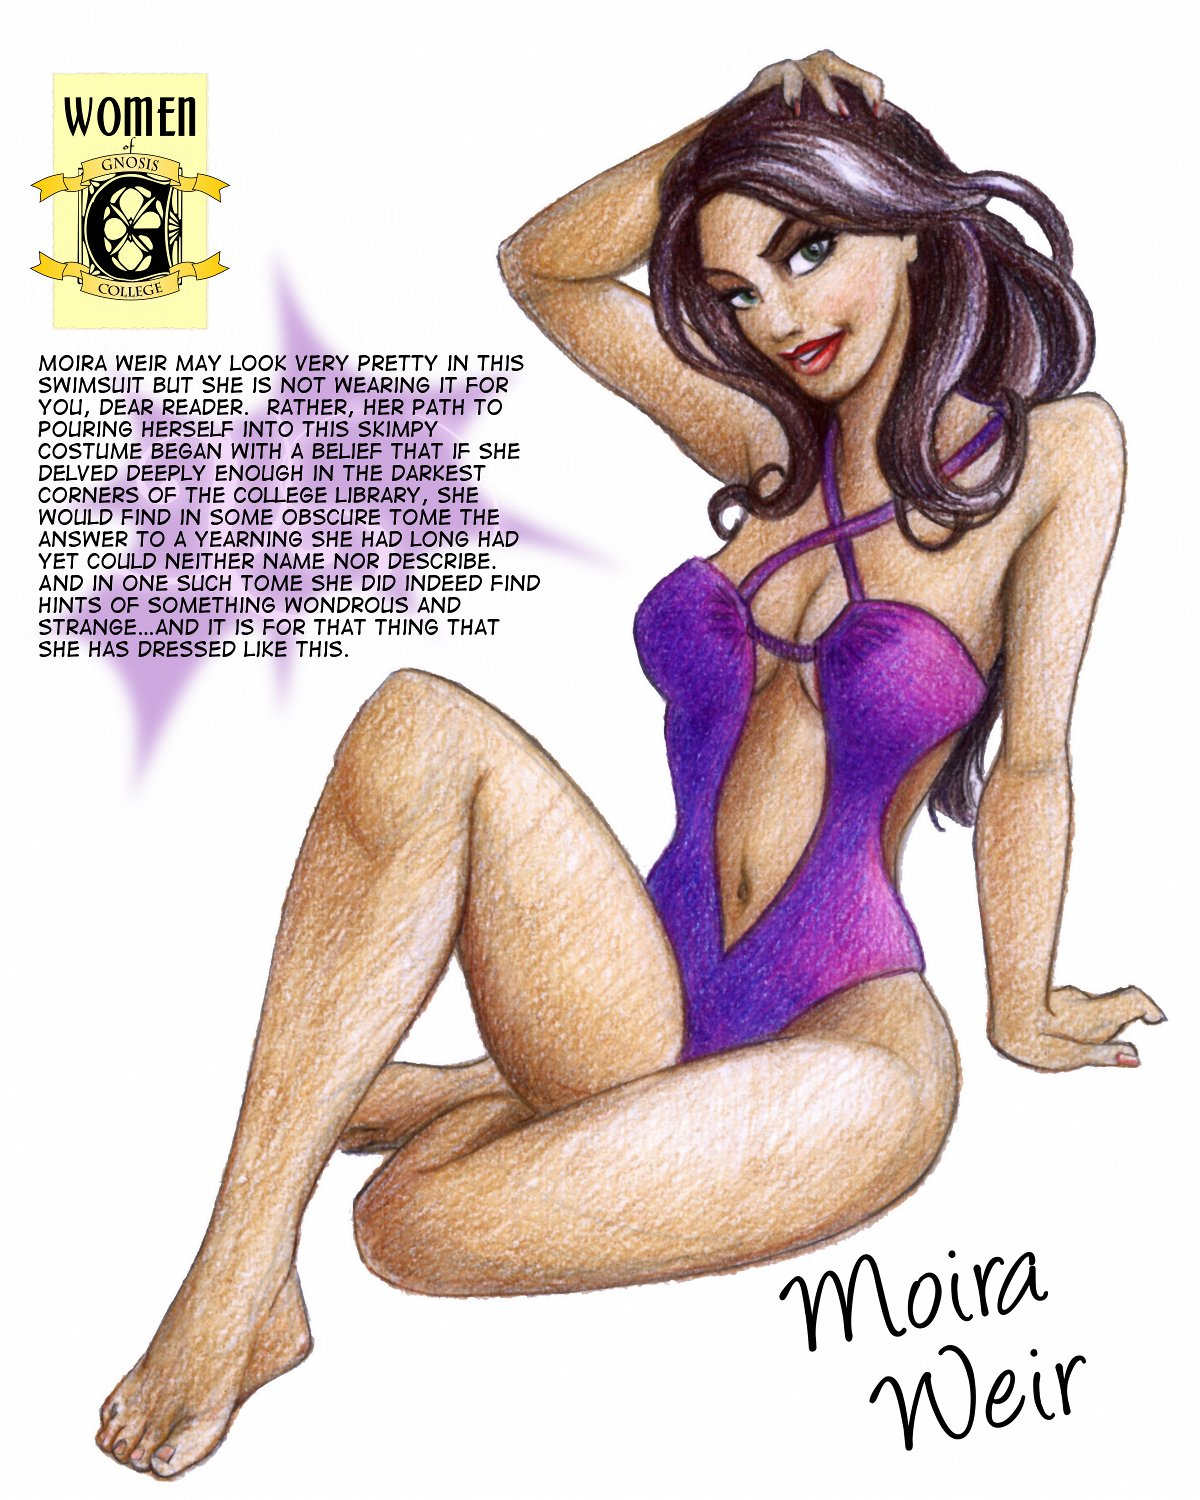 Swimsuit pinup of Moira Weir